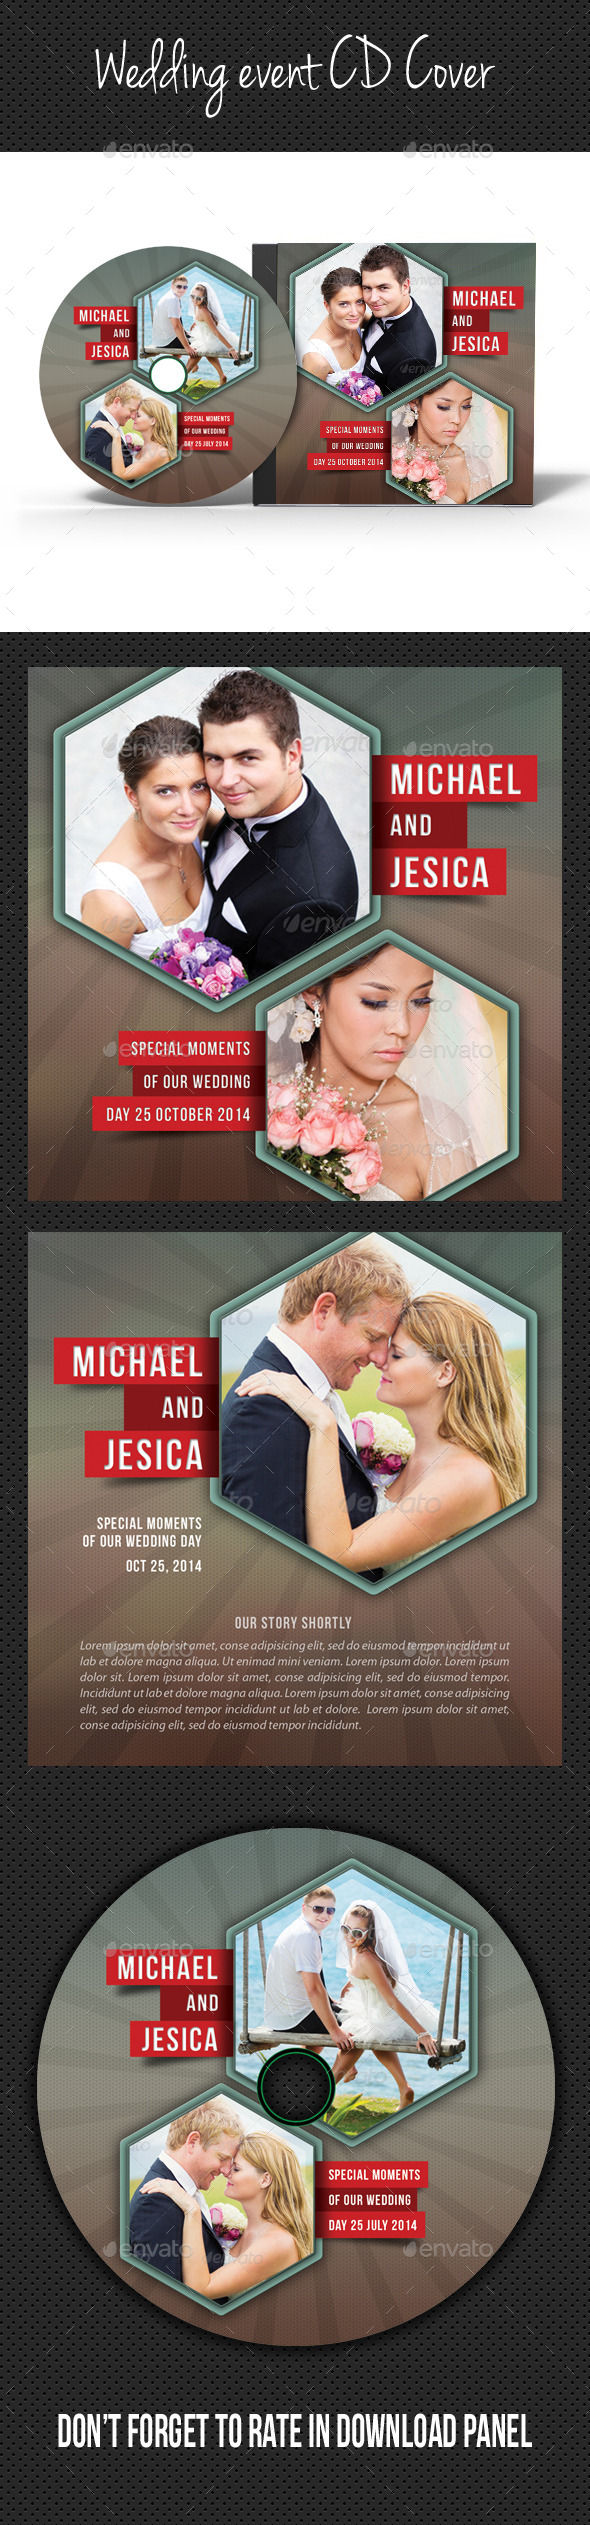 GraphicRiver Wedding Event CD Cover V01 9097831